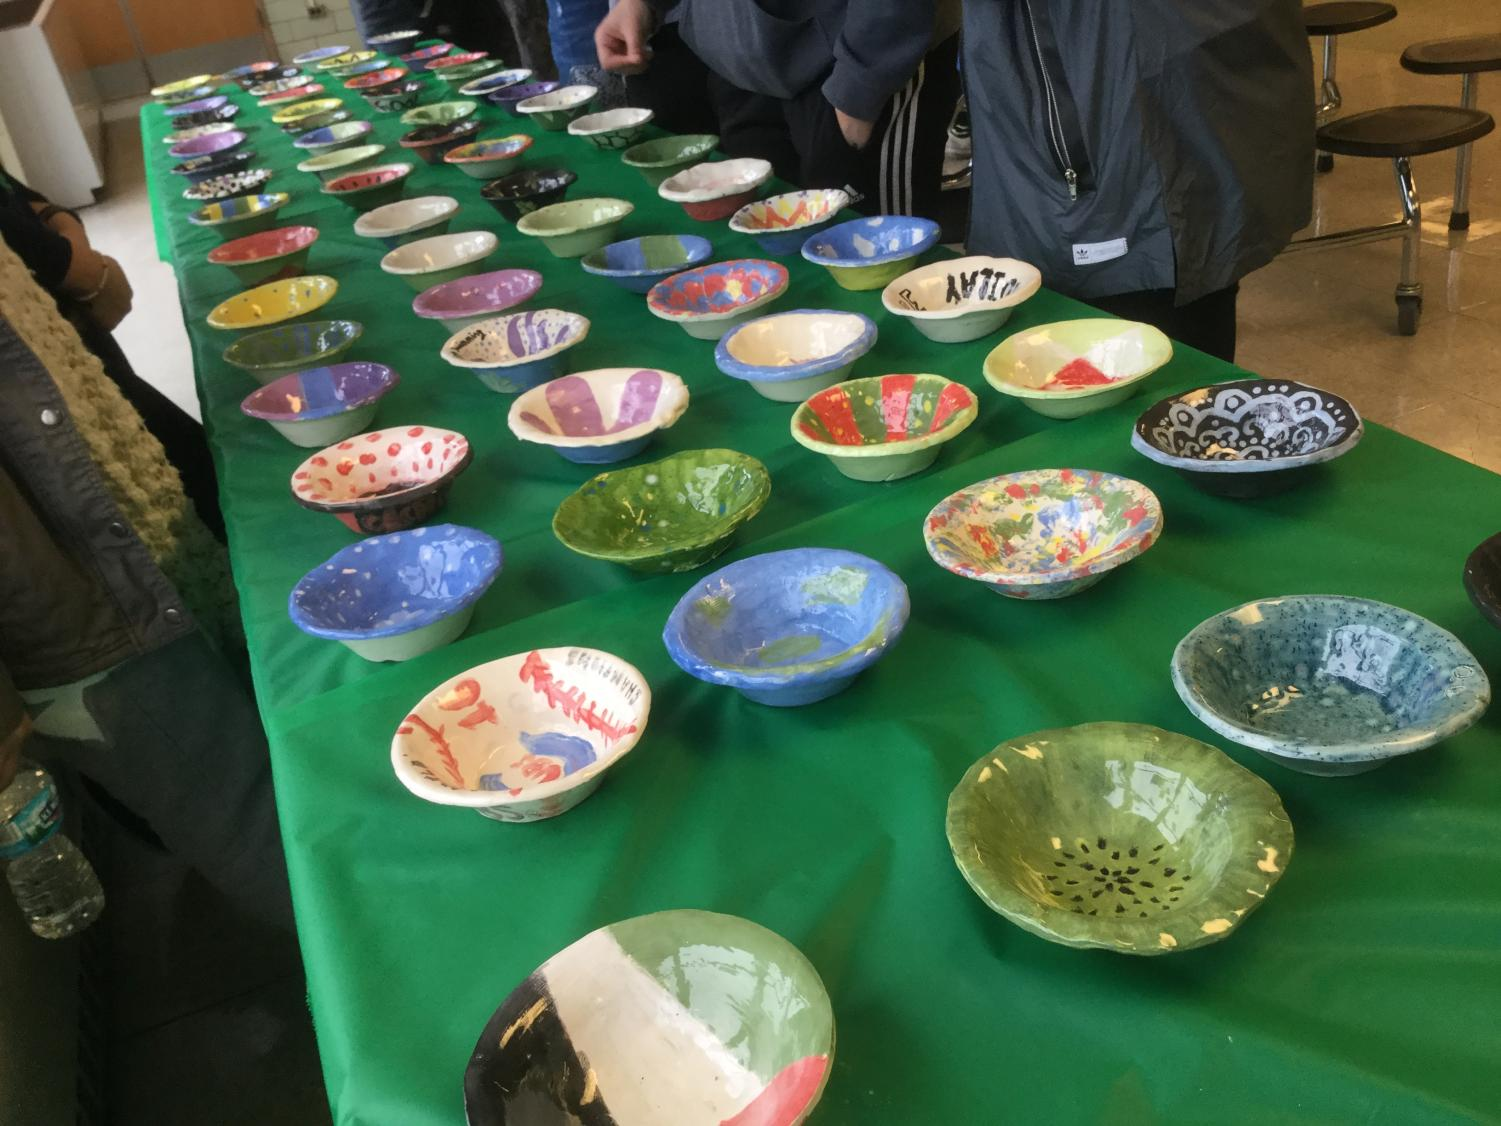 Hand painted ceramic bowls at the fundraiser.